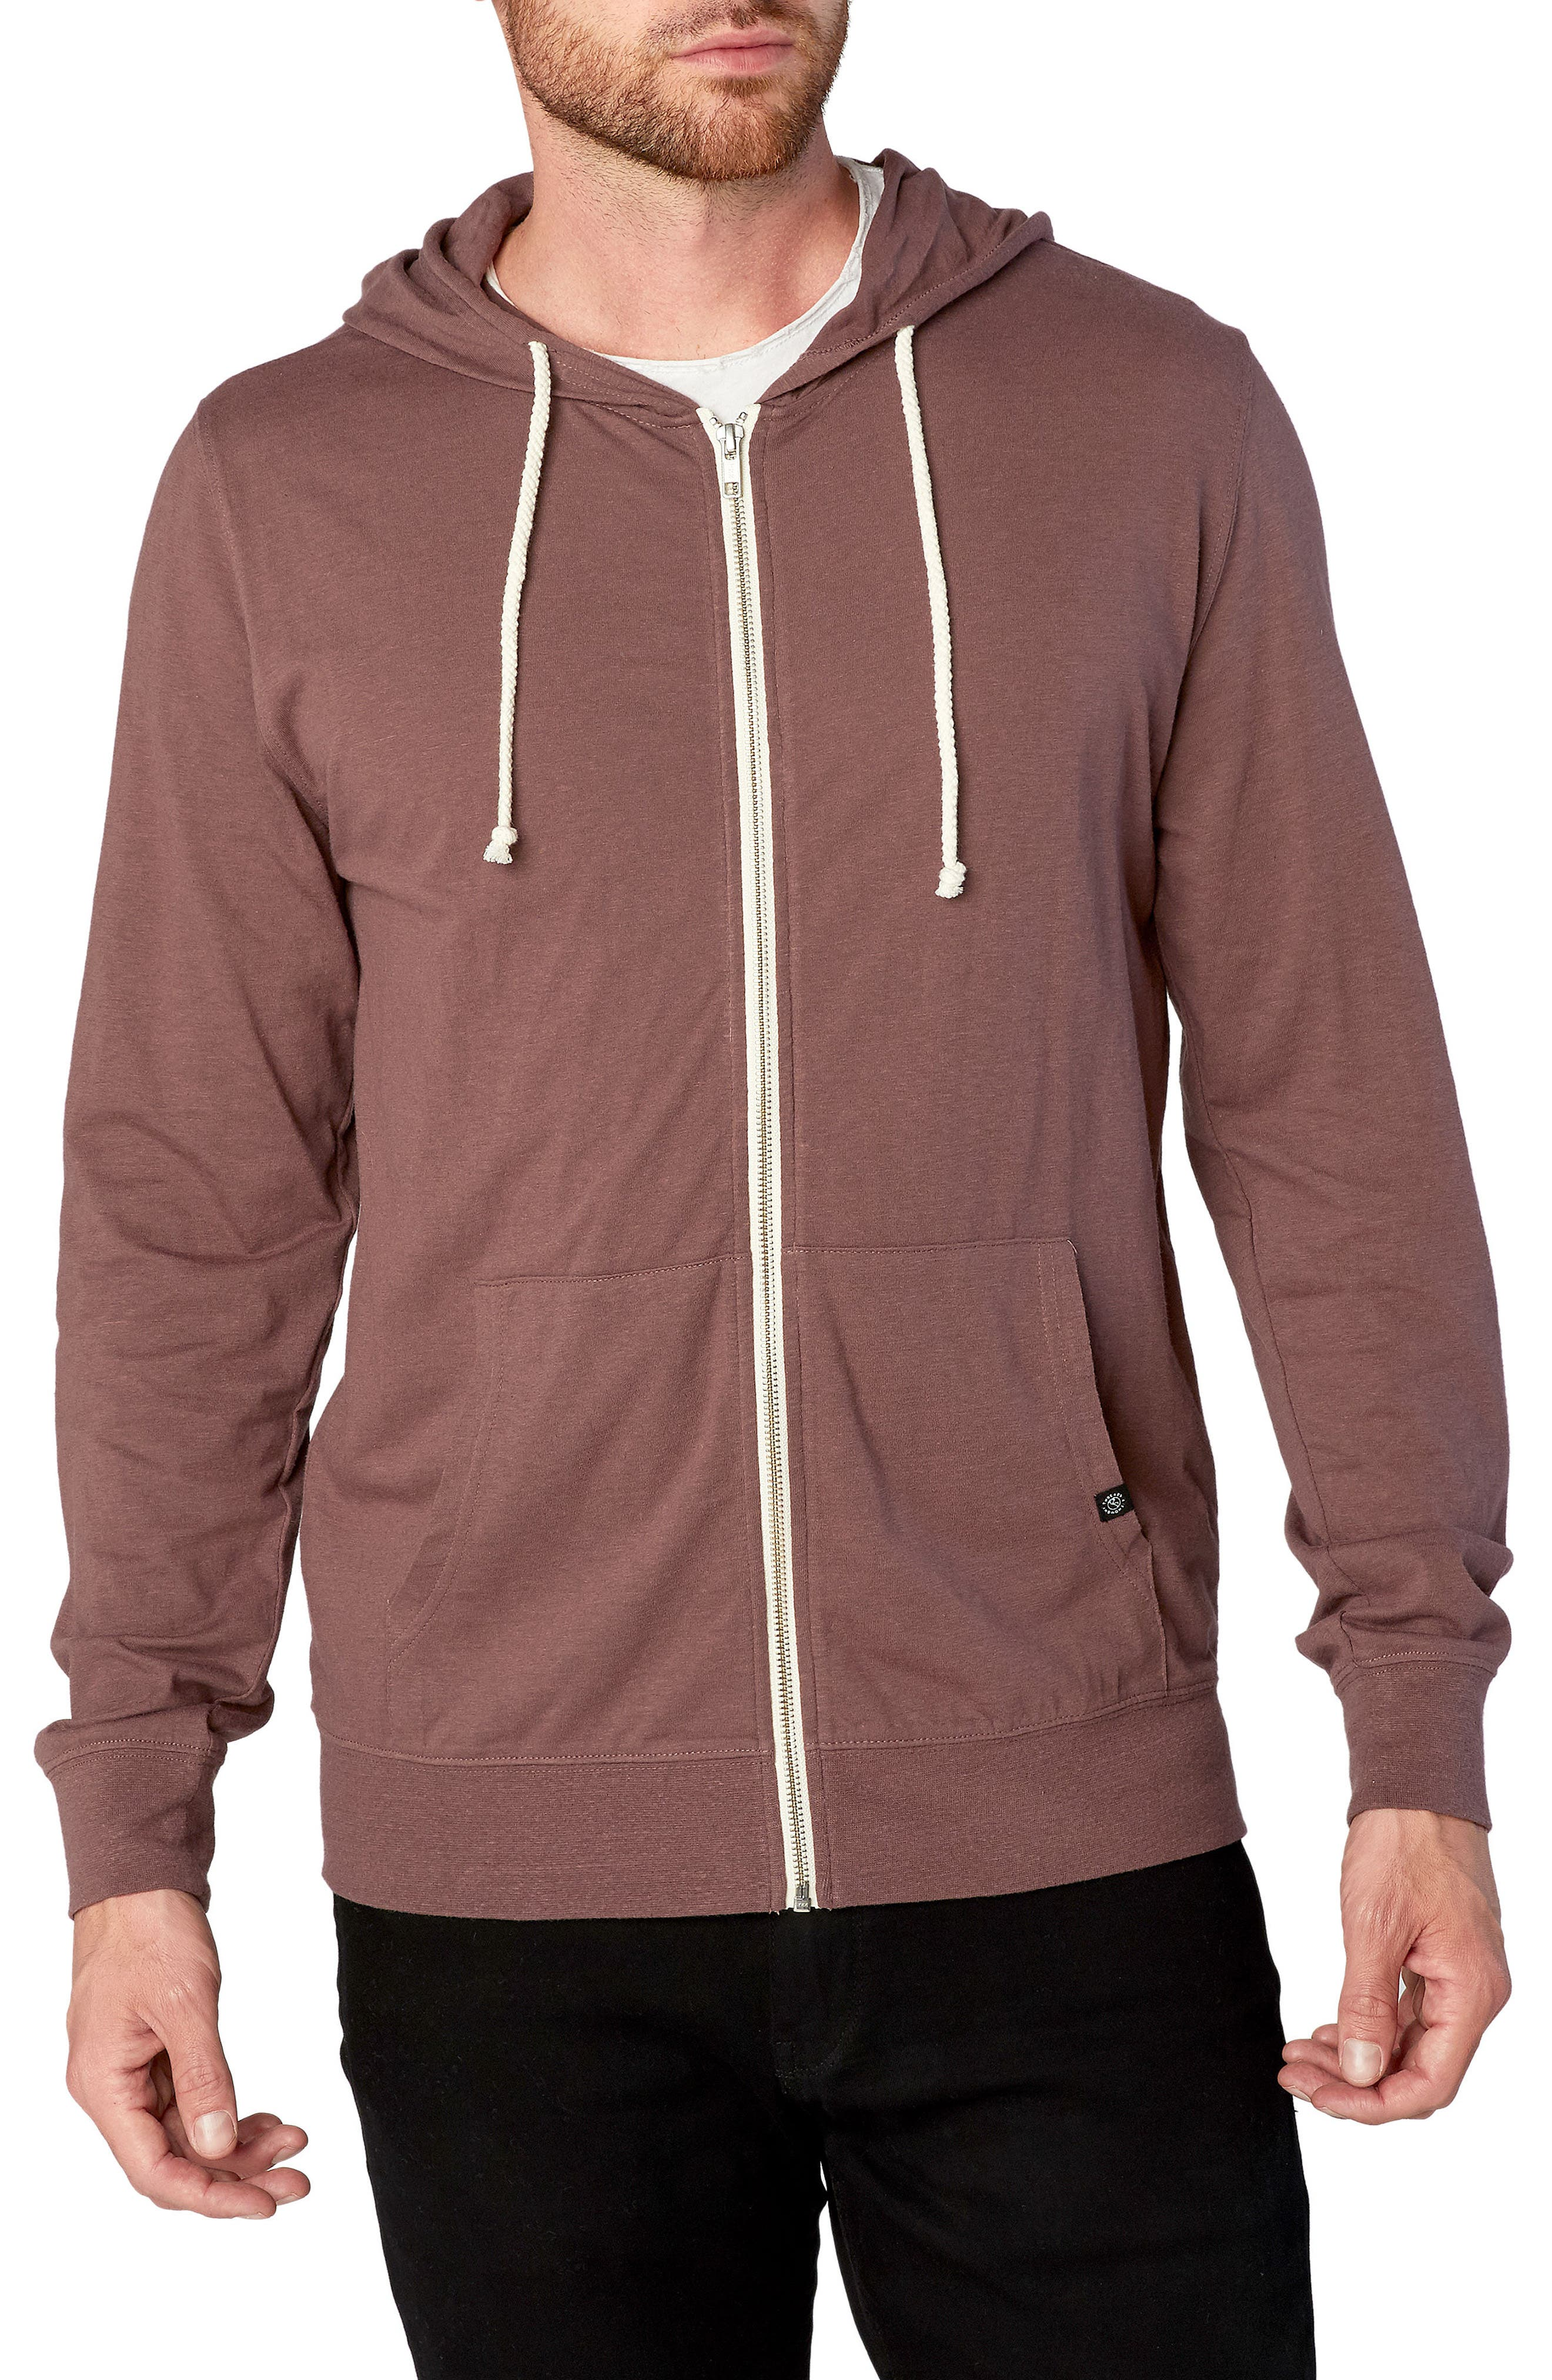 Threads for Thought Giulio Zip Hoodie,                         Main,                         color, Twilight Mauve